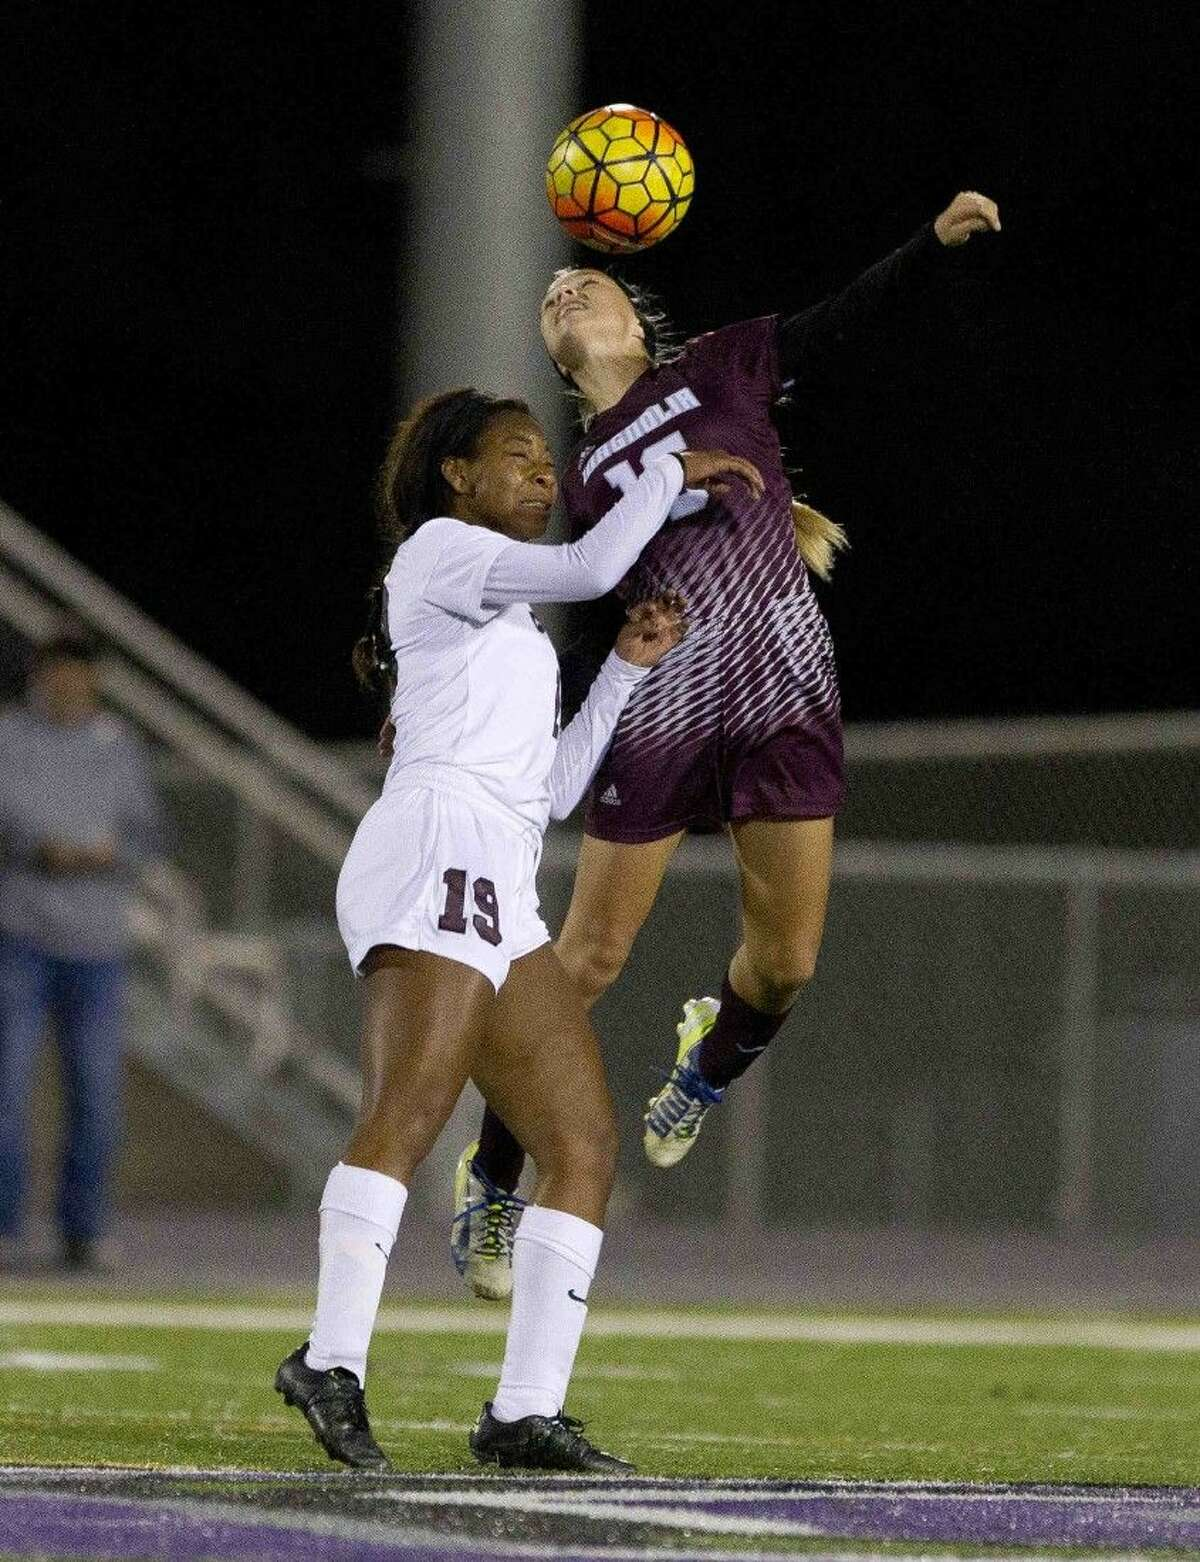 Erin Mooneyham, of Magnolia, heads the ball during a Region III-5A area round playoff game at College Station High School Friday in College Station. Go to HCNpics.com to purchase this photo and others like it.